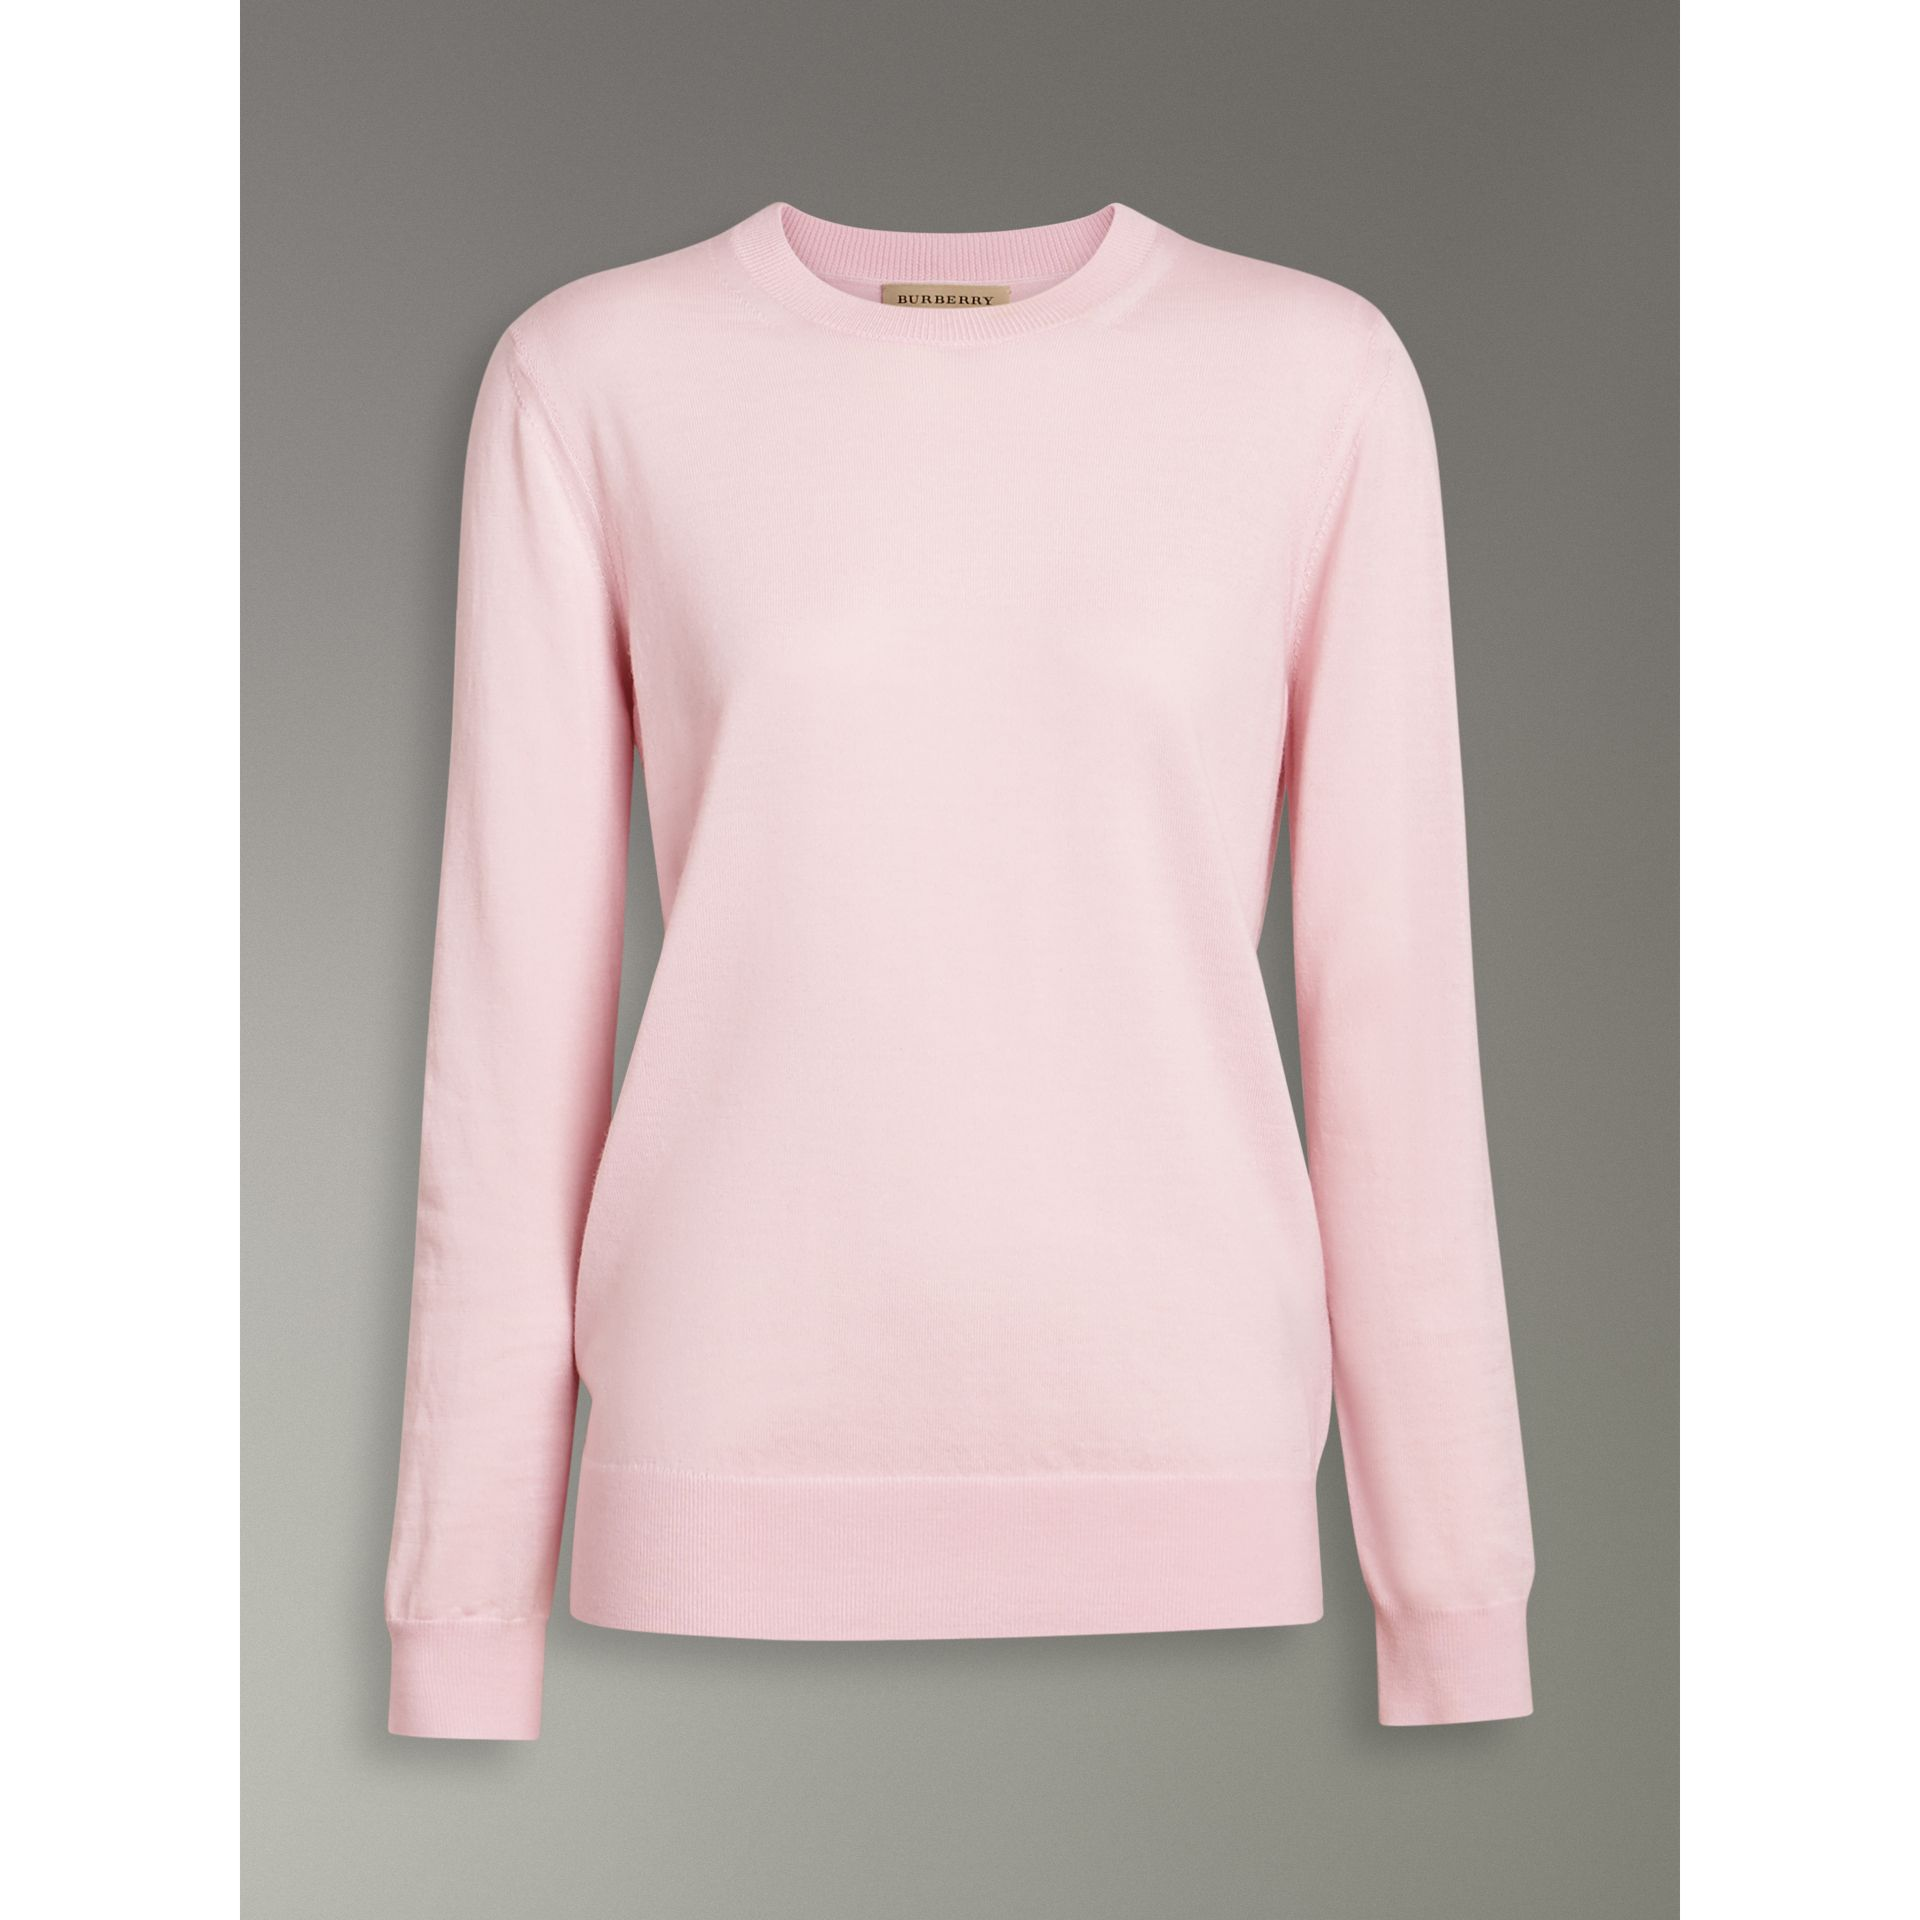 Check Elbow Detail Merino Wool Sweater in Light Pink - Women | Burberry United Kingdom - gallery image 3